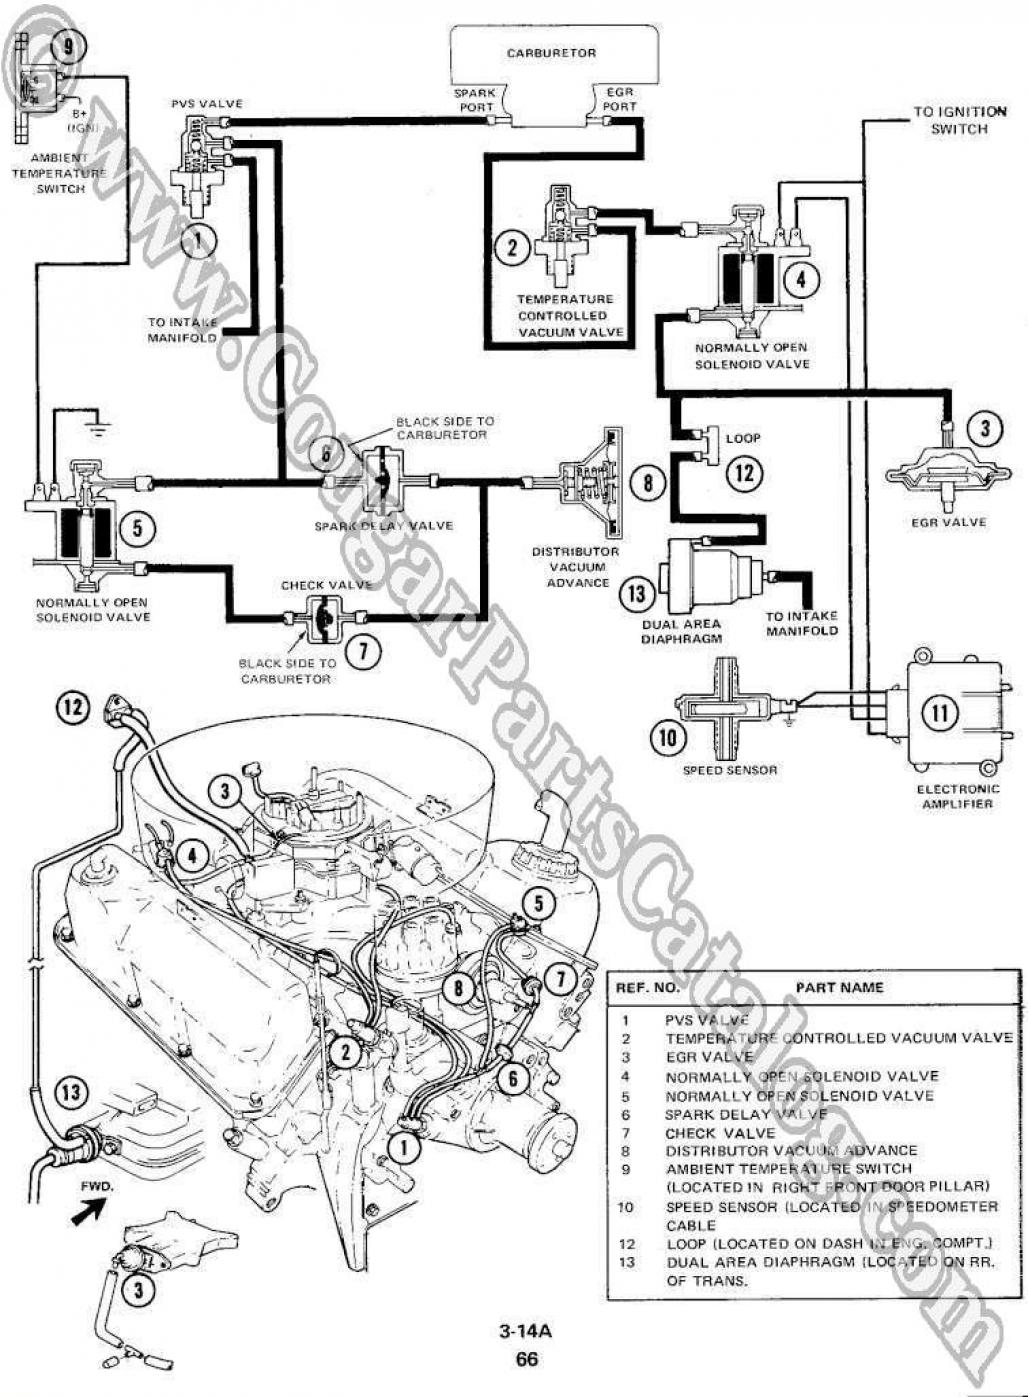 73 challenger wiring diagram 72 challenger wiring diagram 1973 cougar wiring diagram electrical drawing wiring #2